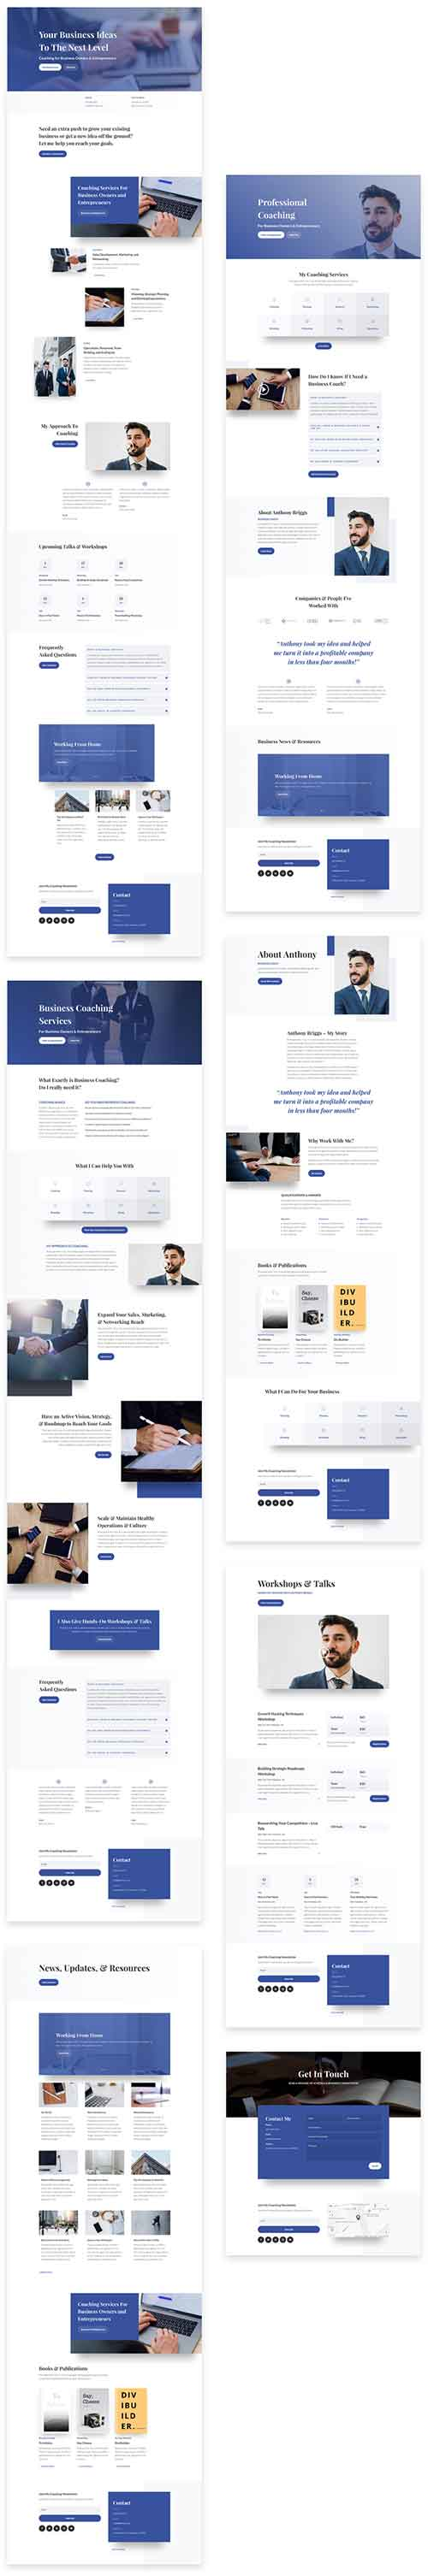 divi business coach layout pack